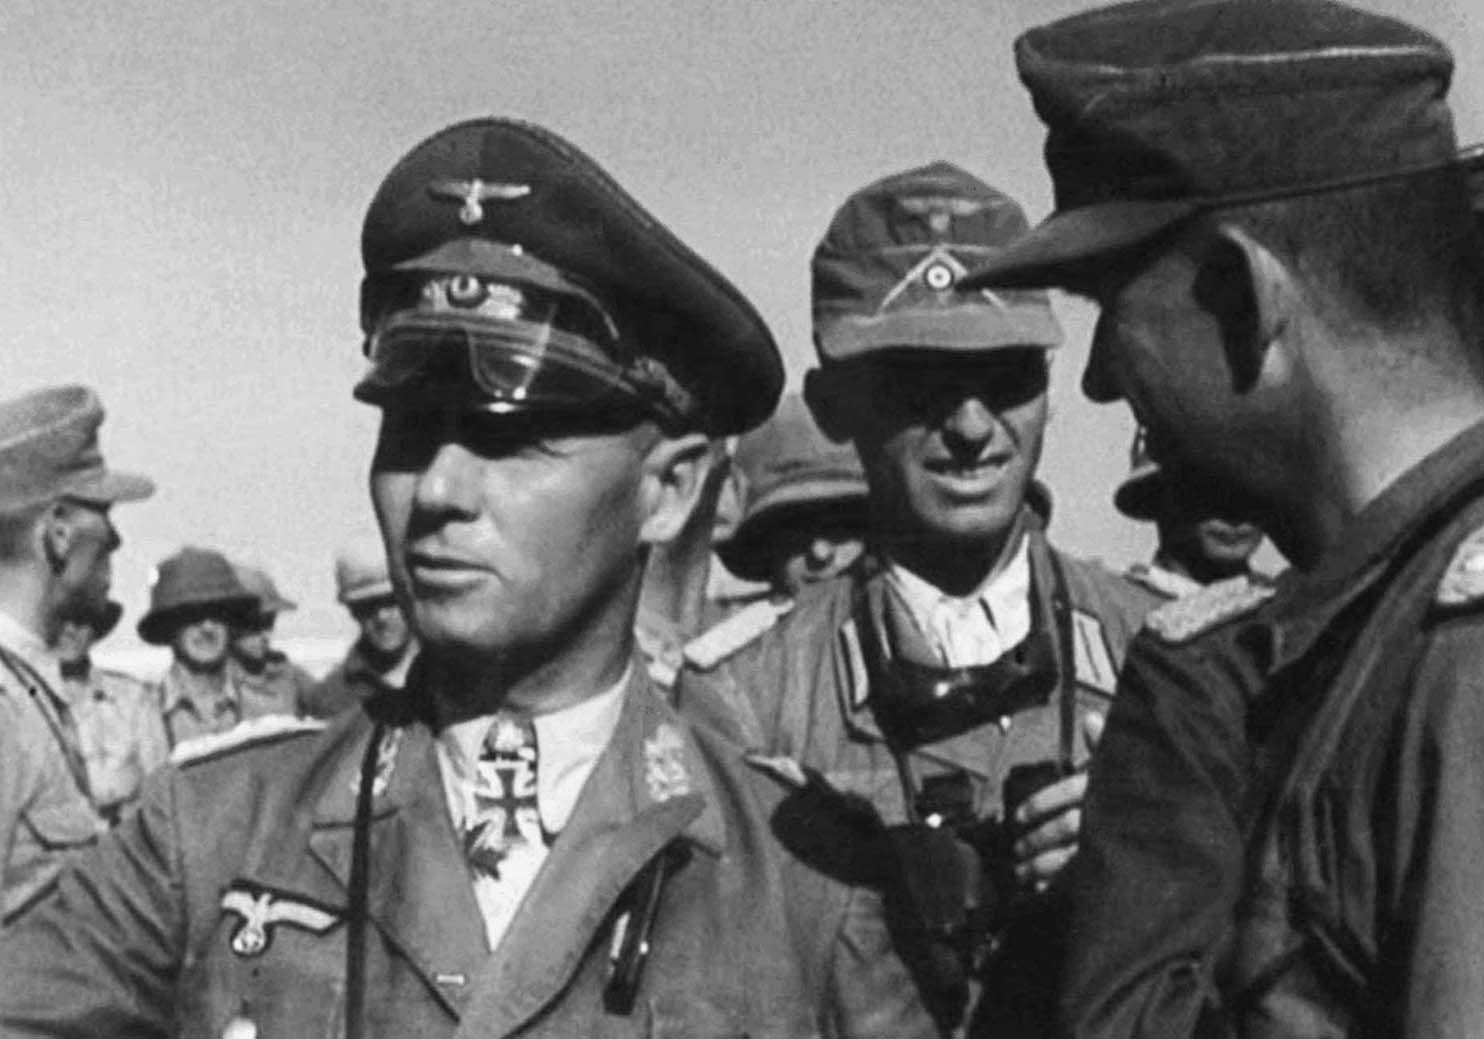 Why was one of Nazi Germany's best tank commander, Erwin Rommel, sent to Africa instead of being sent to lead in Barbarossa?